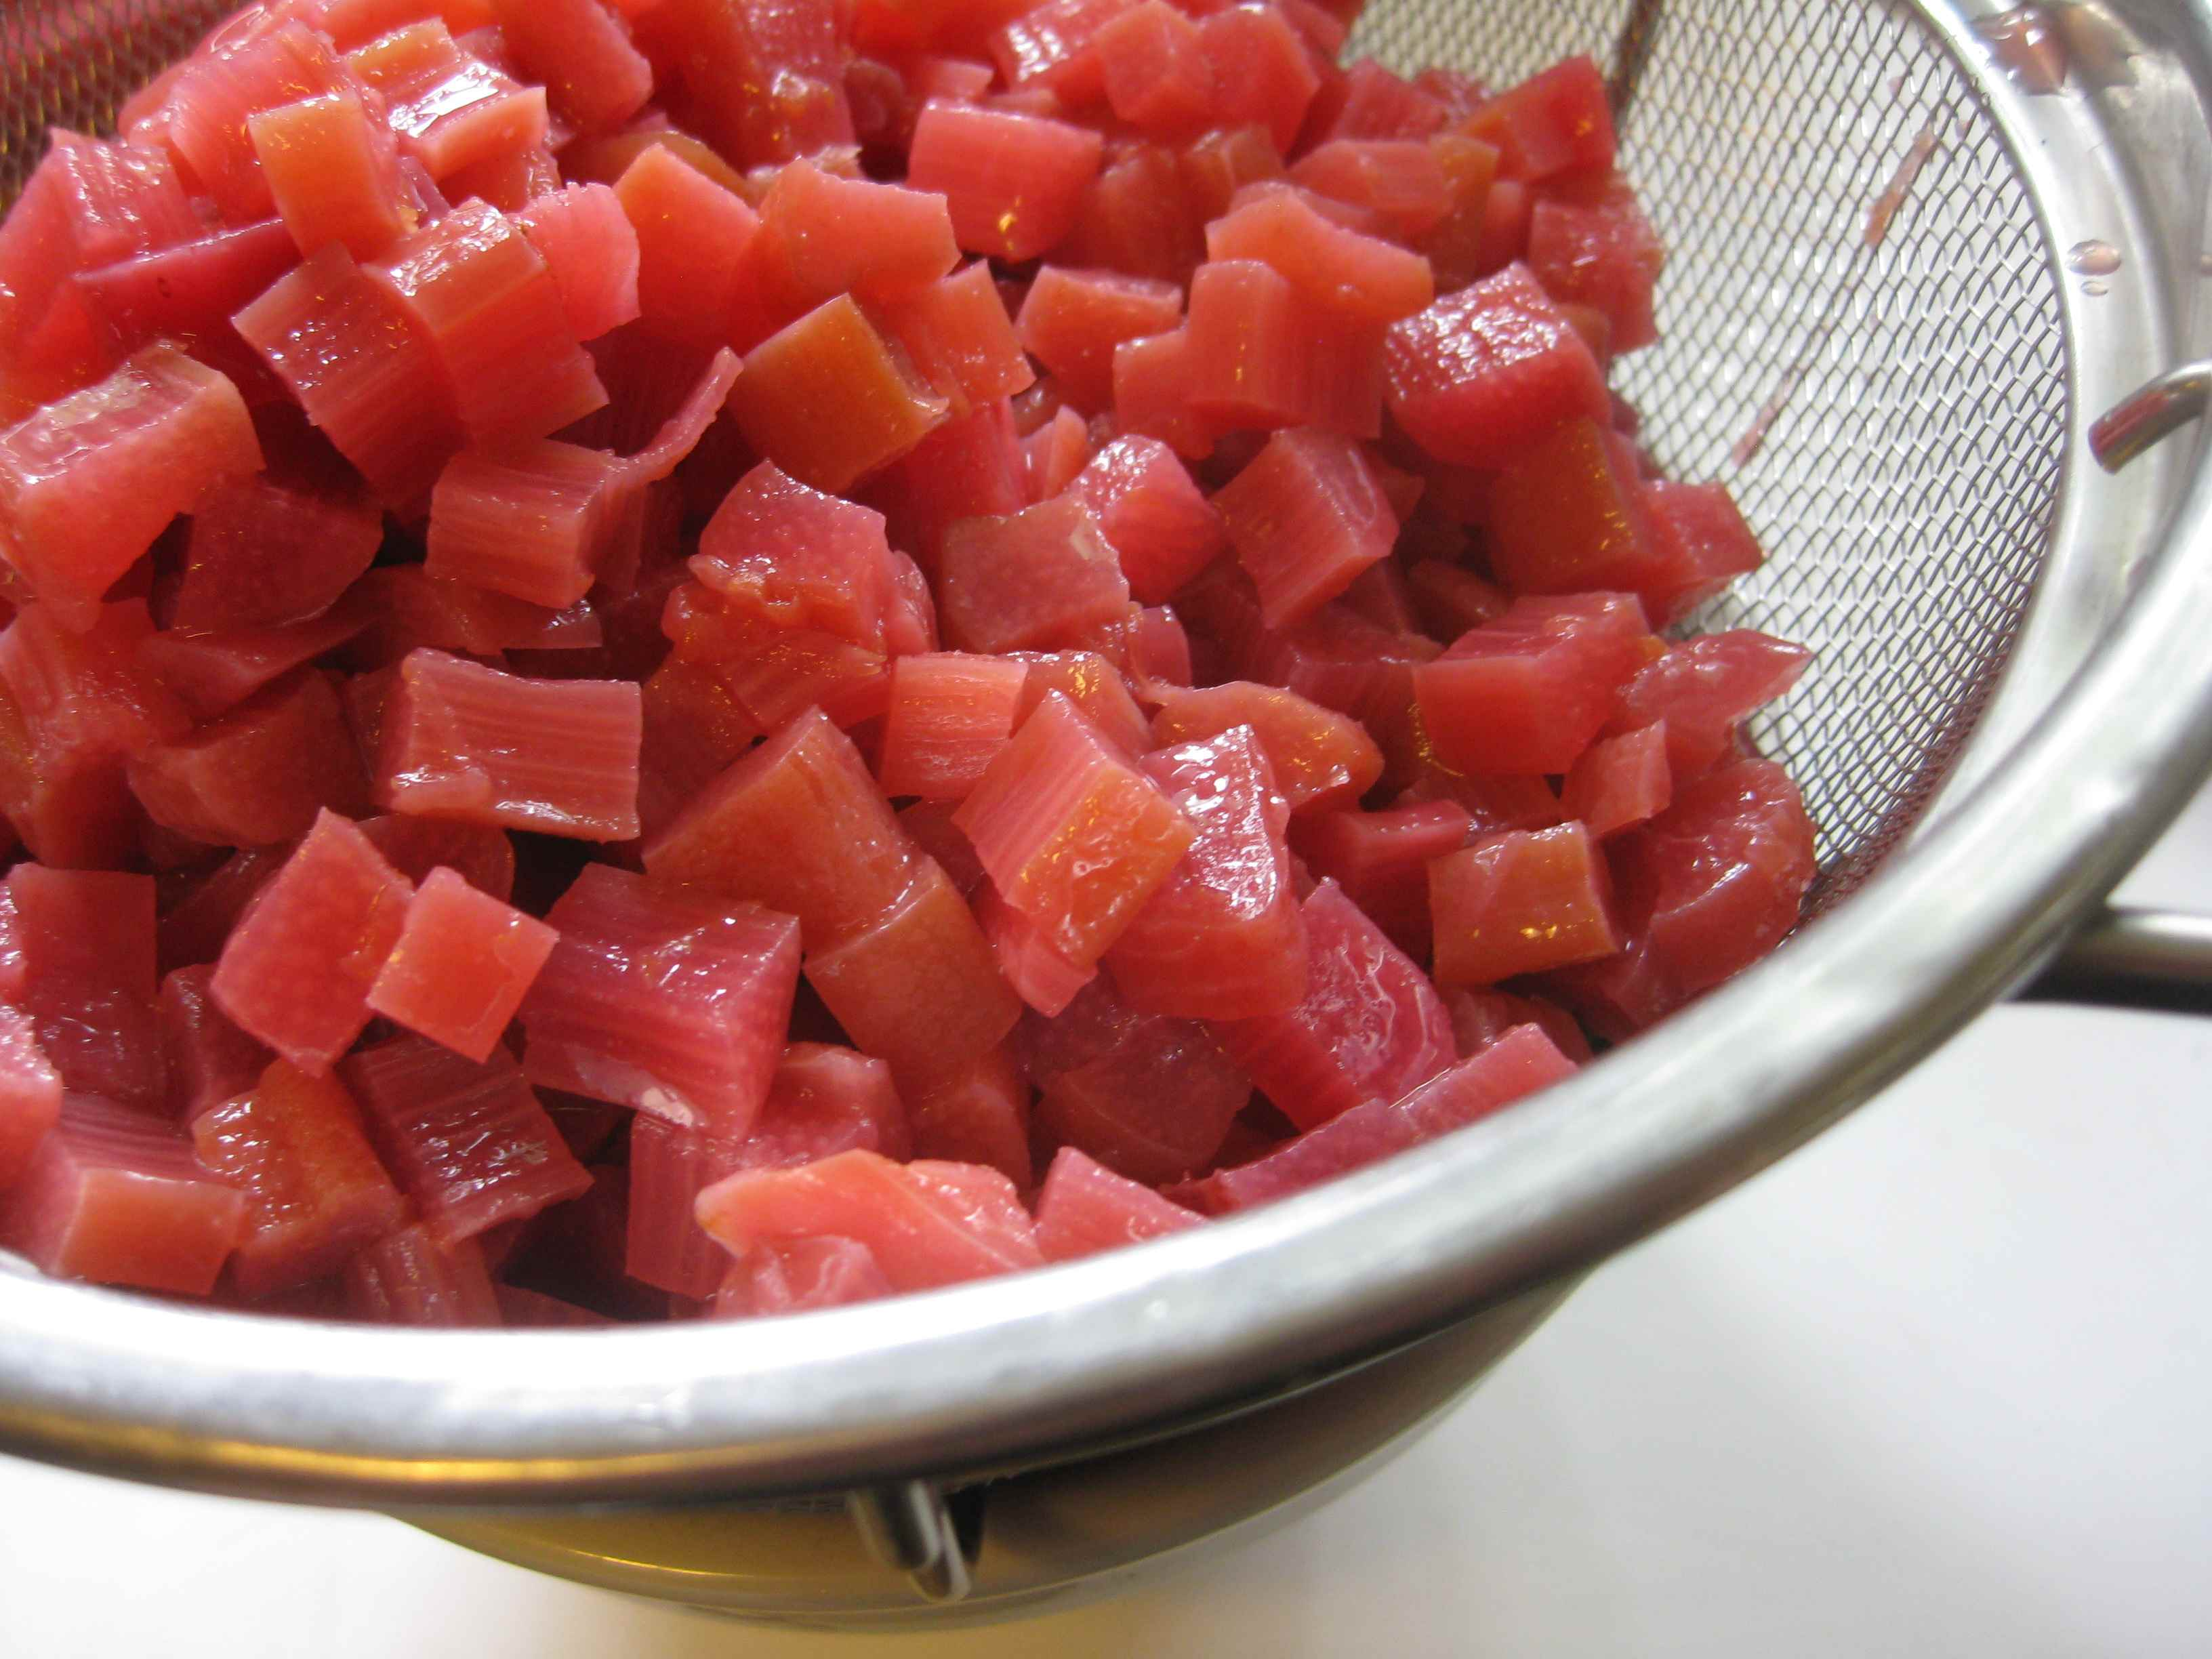 Rhubarb-Beer Jam adapted from Paul Virant, The Preservation Kitchen